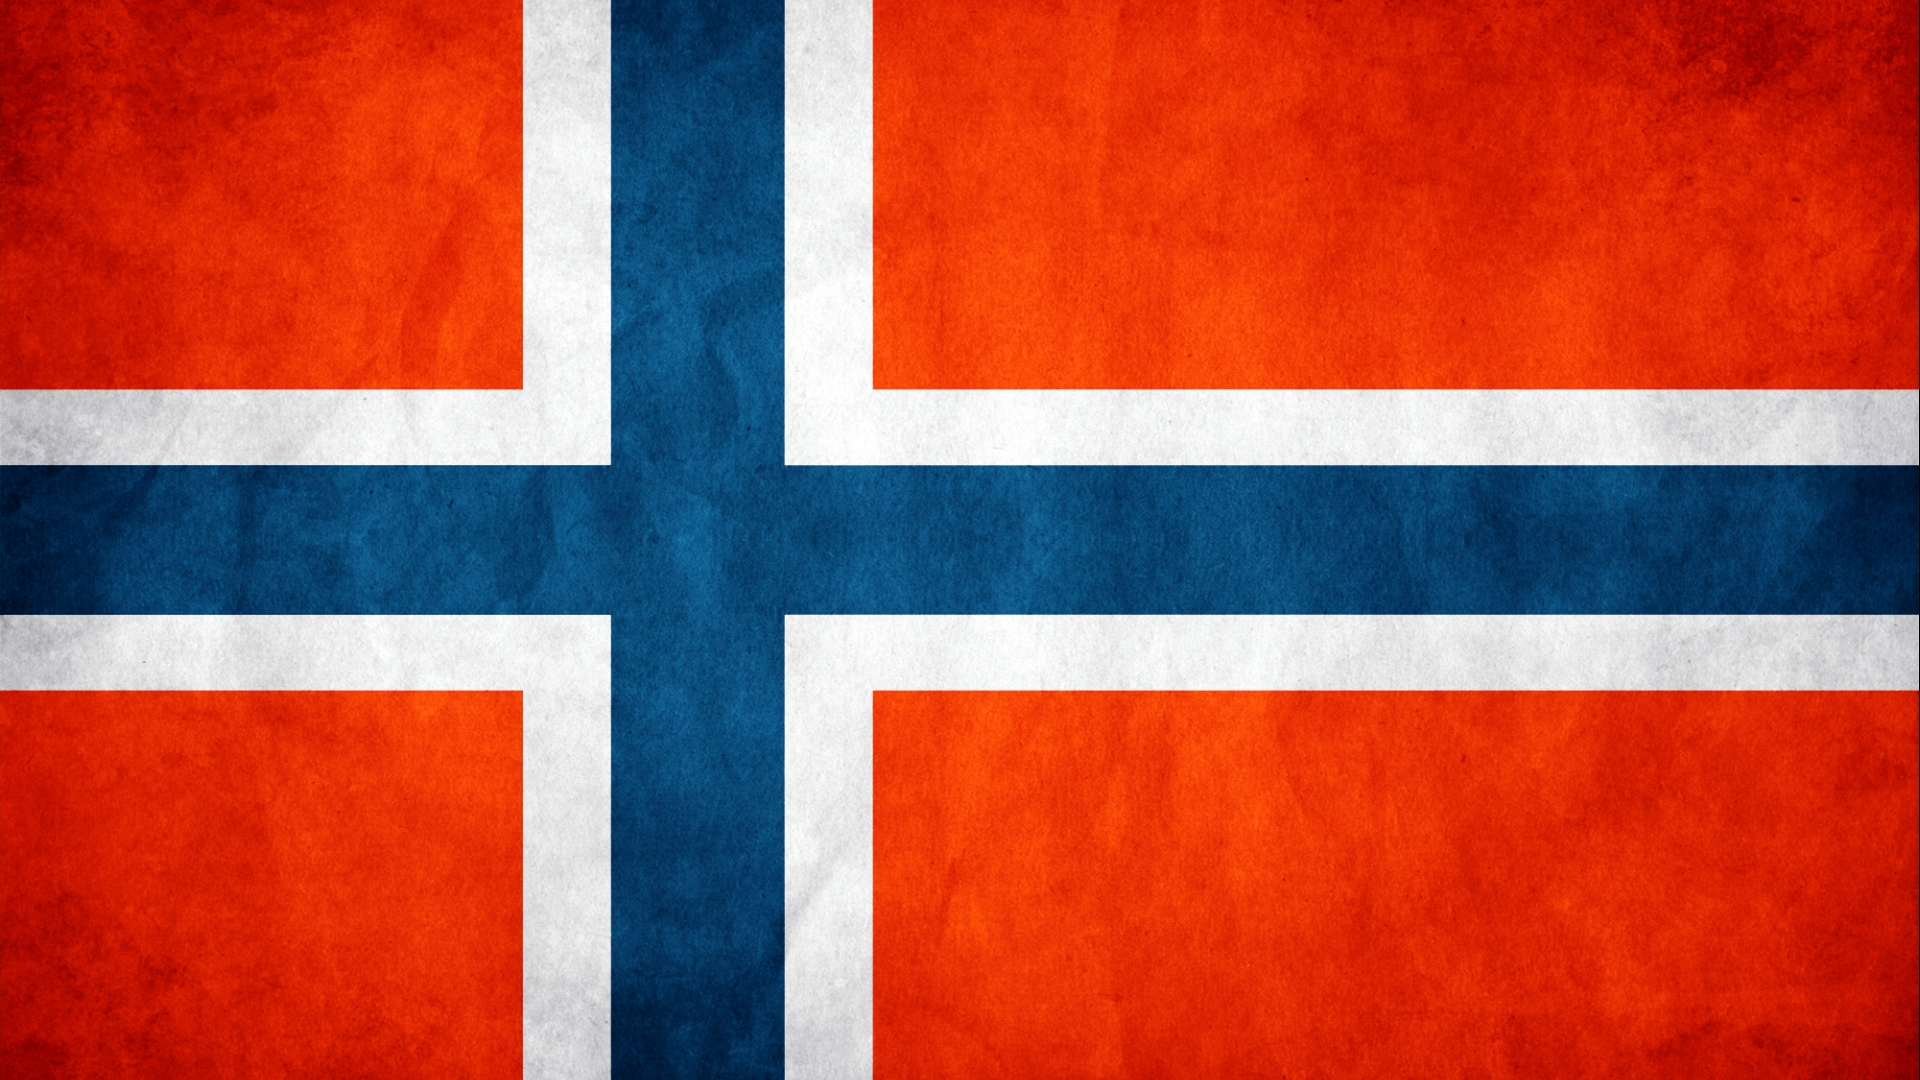 Norway flag wallpaper   HD Wallpapers 1920x1080